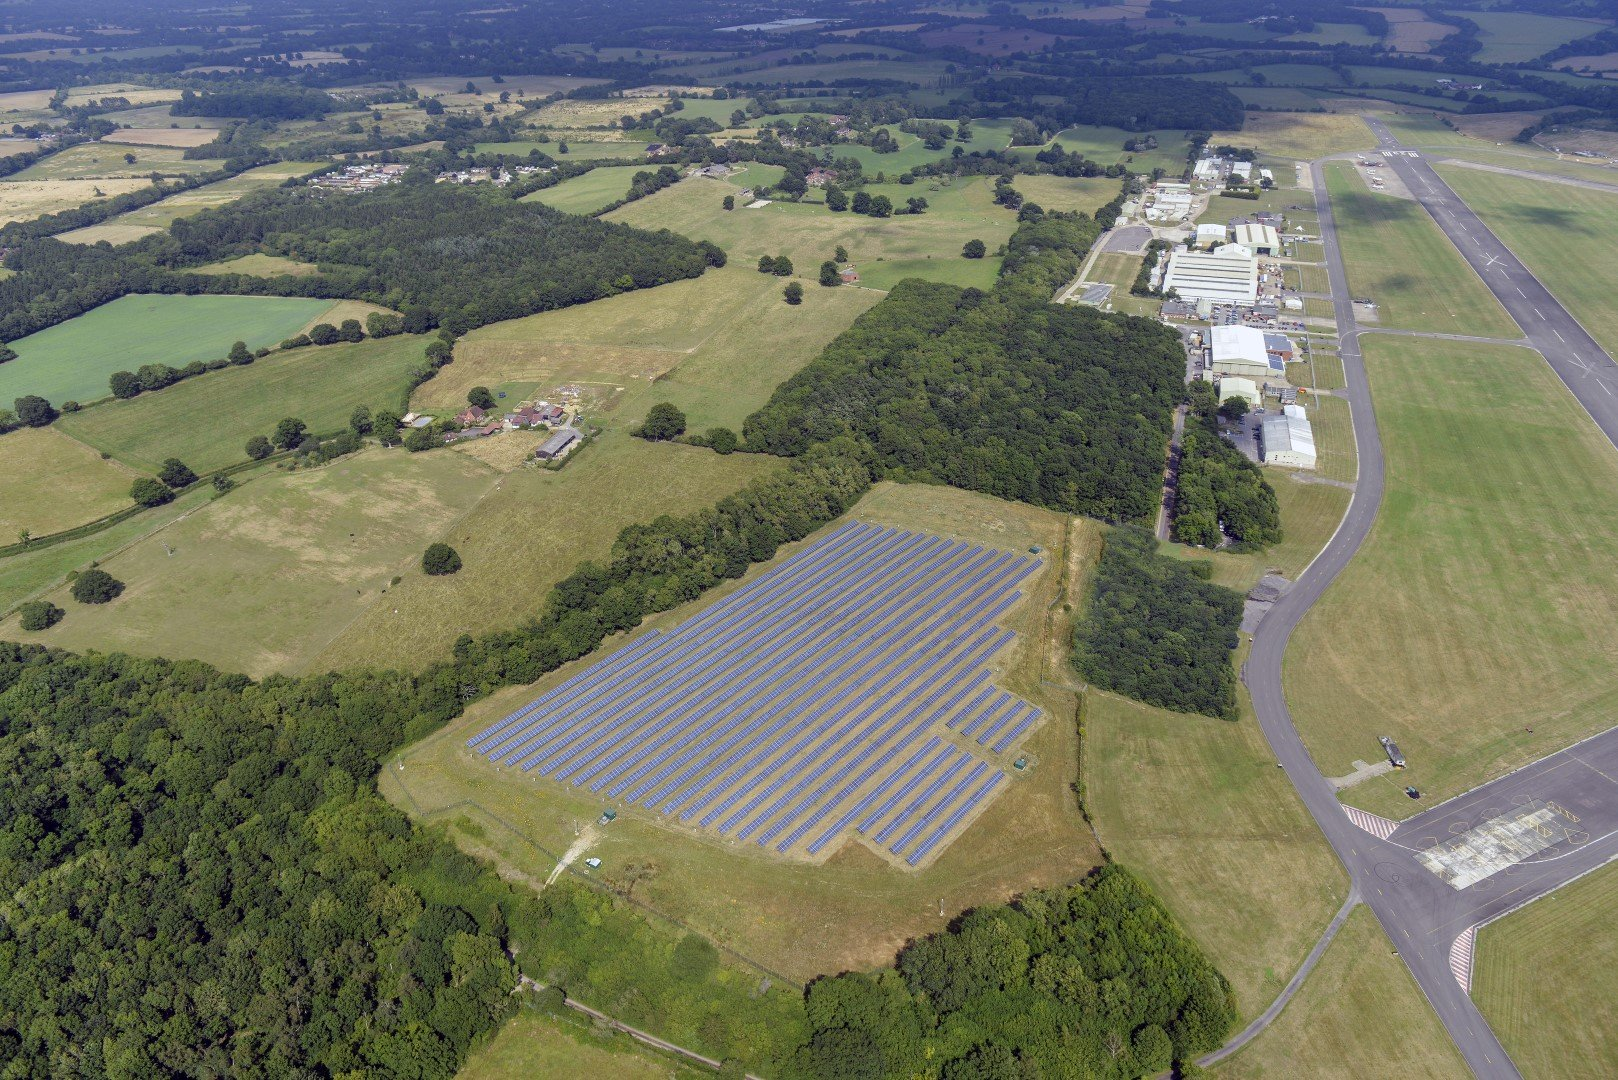 Lightsource connects Northern Ireland's maiden utility-scale solar farm